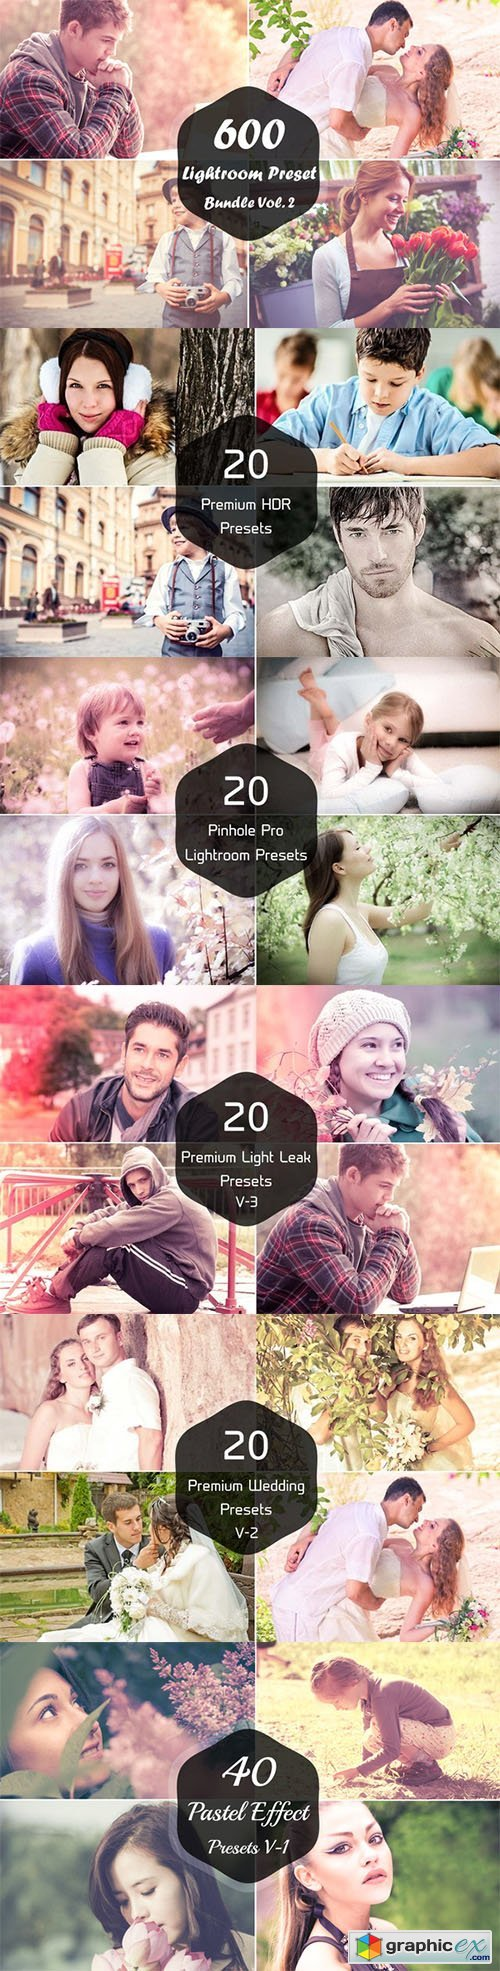 600 Lightroom Presets Bundle Vol. 2